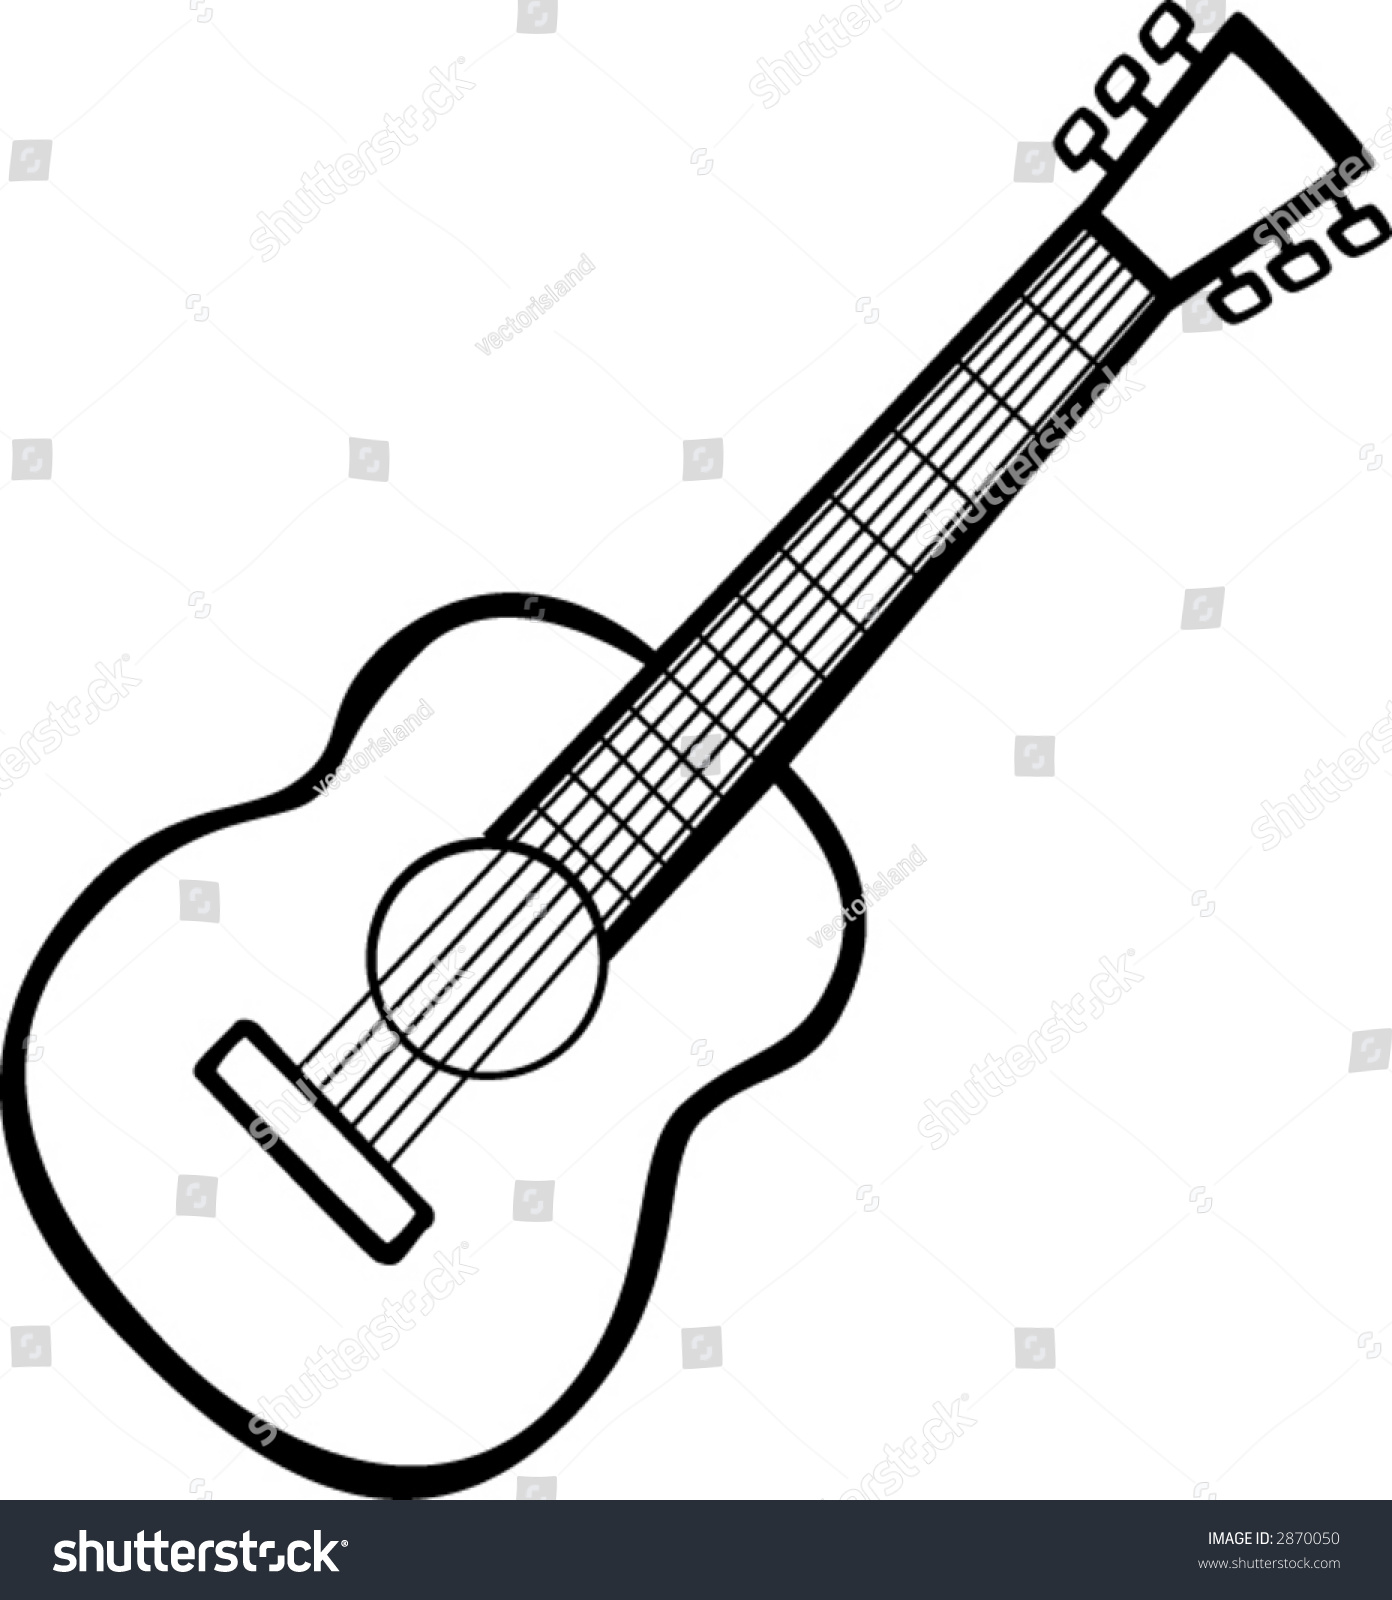 Classical Acoustic Guitar Stock Vector 2870050 - Shutterstock